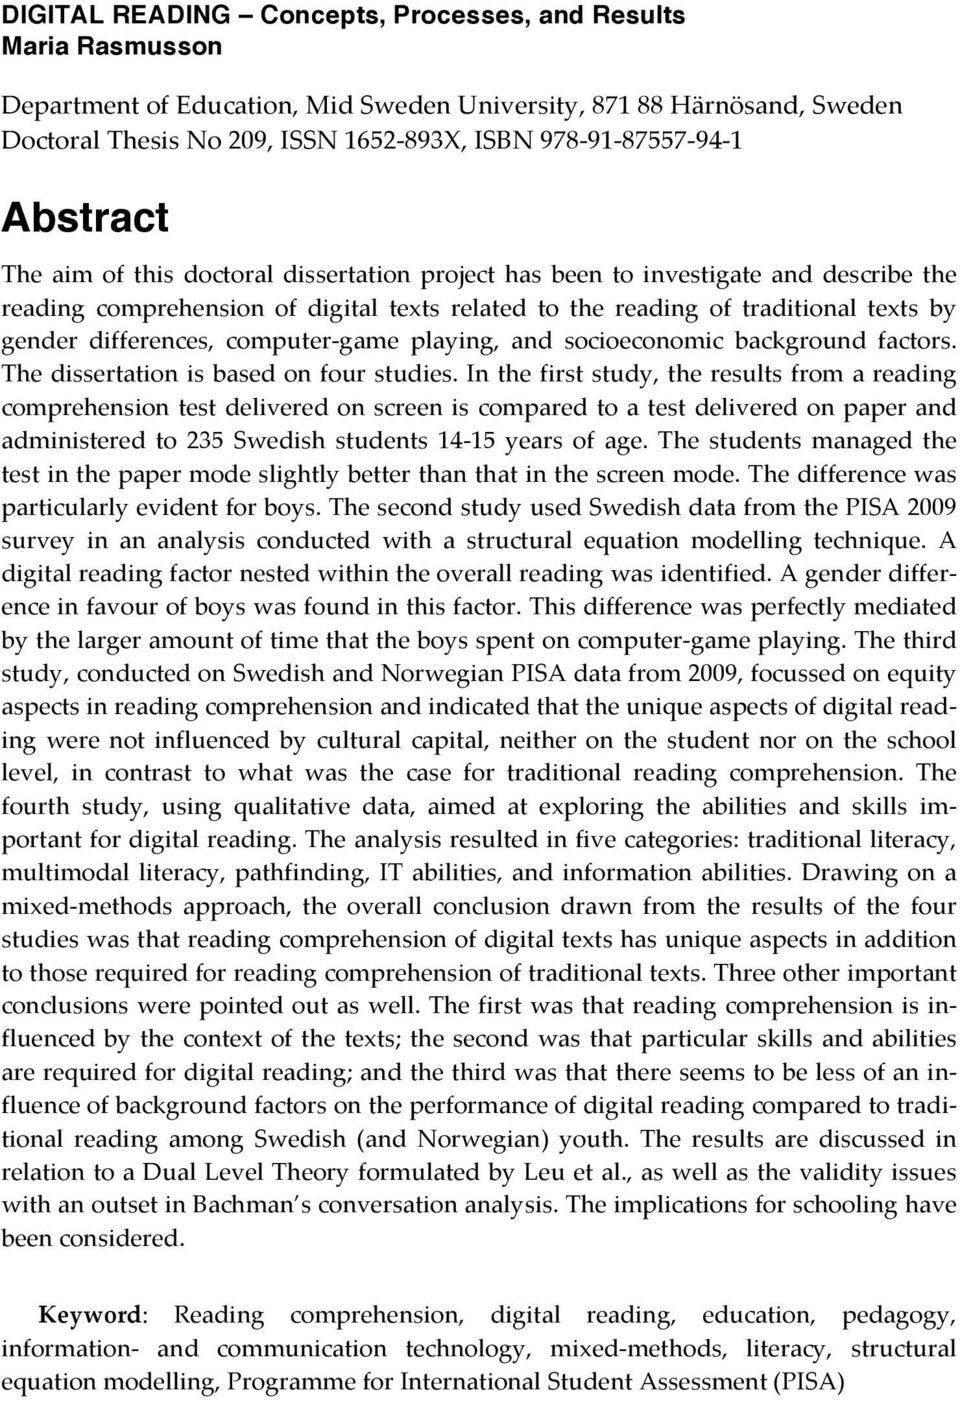 computertgame playing, and socioeconomic background factors. Thedissertationisbasedonfourstudies.